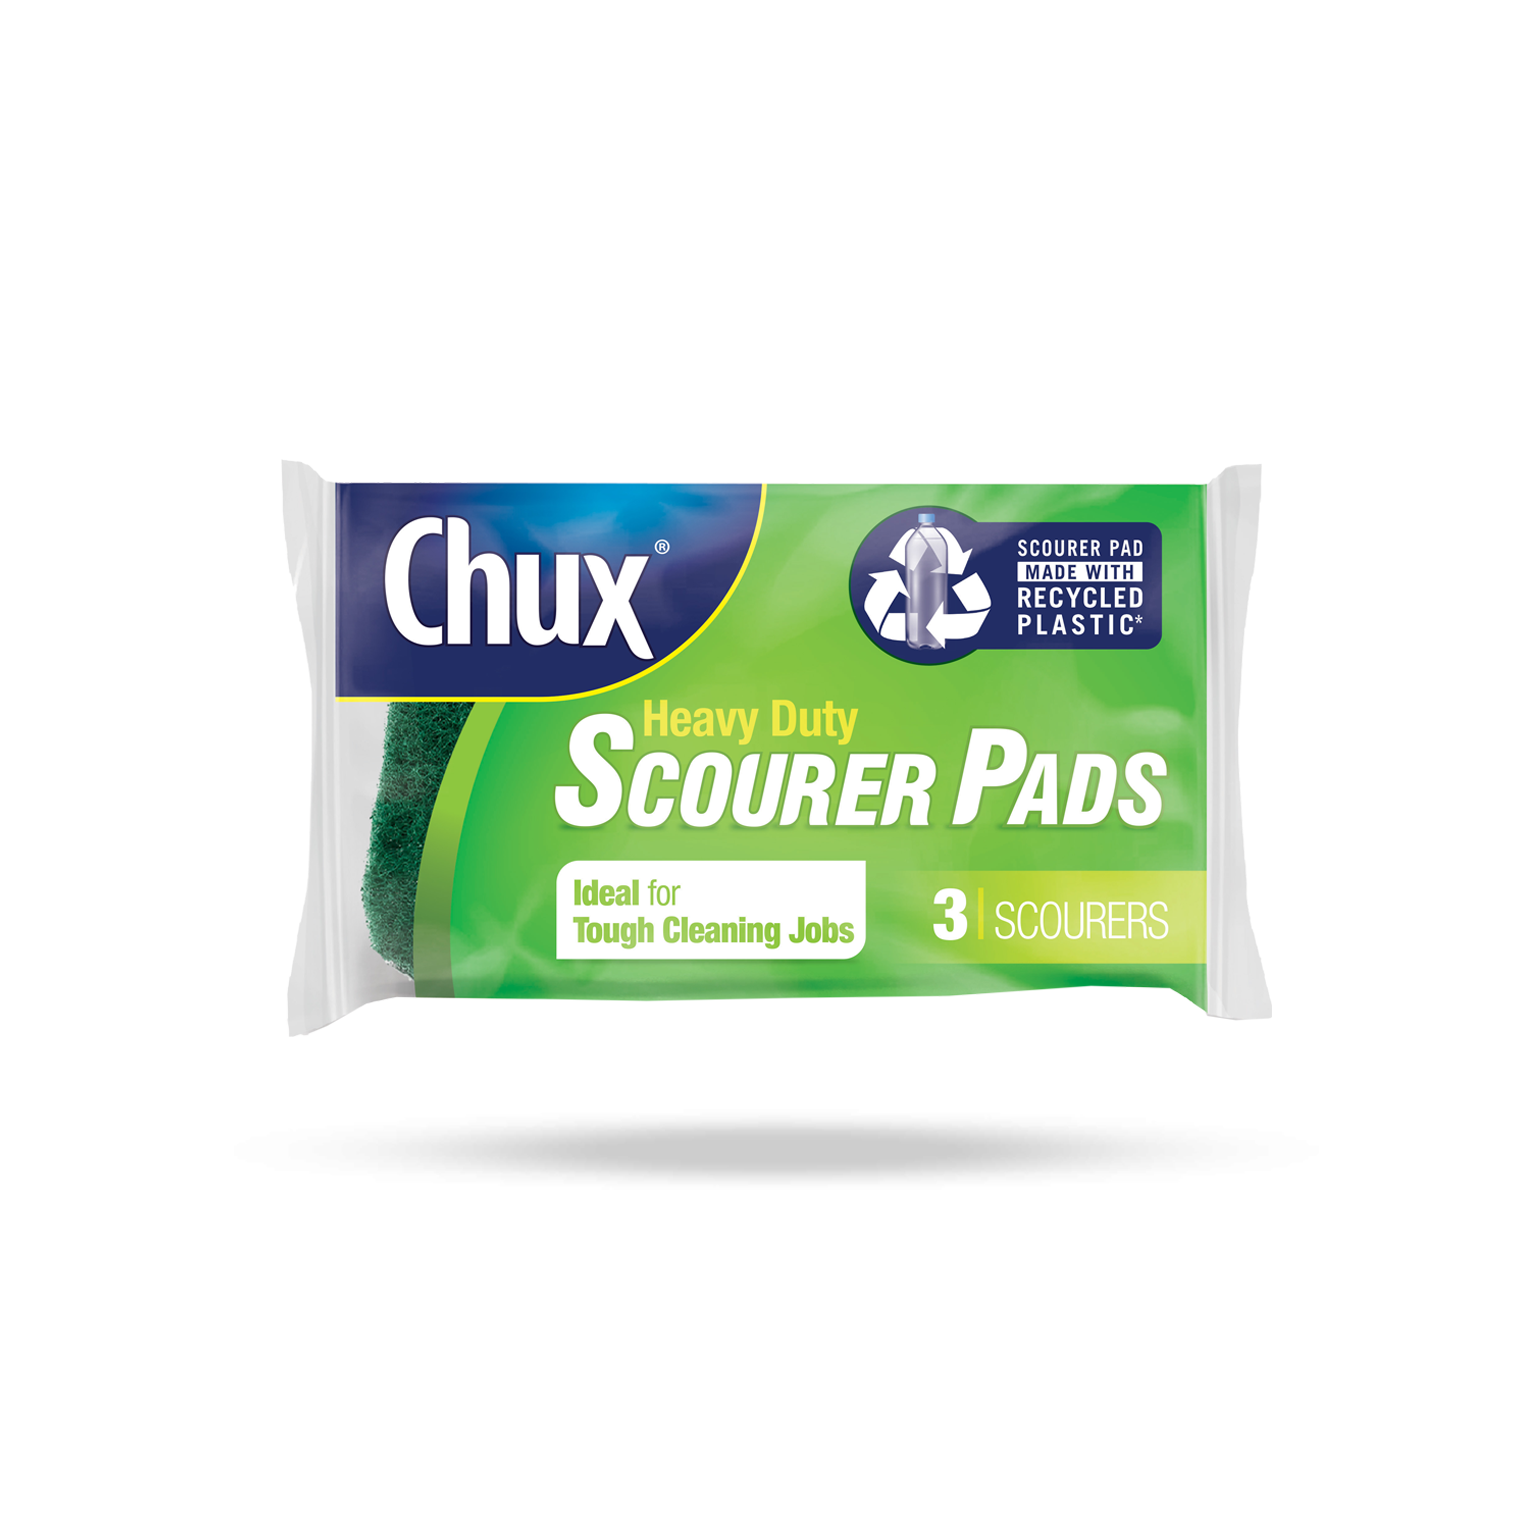 Chux® Heavy Duty Scourer Pads - 3 Pack